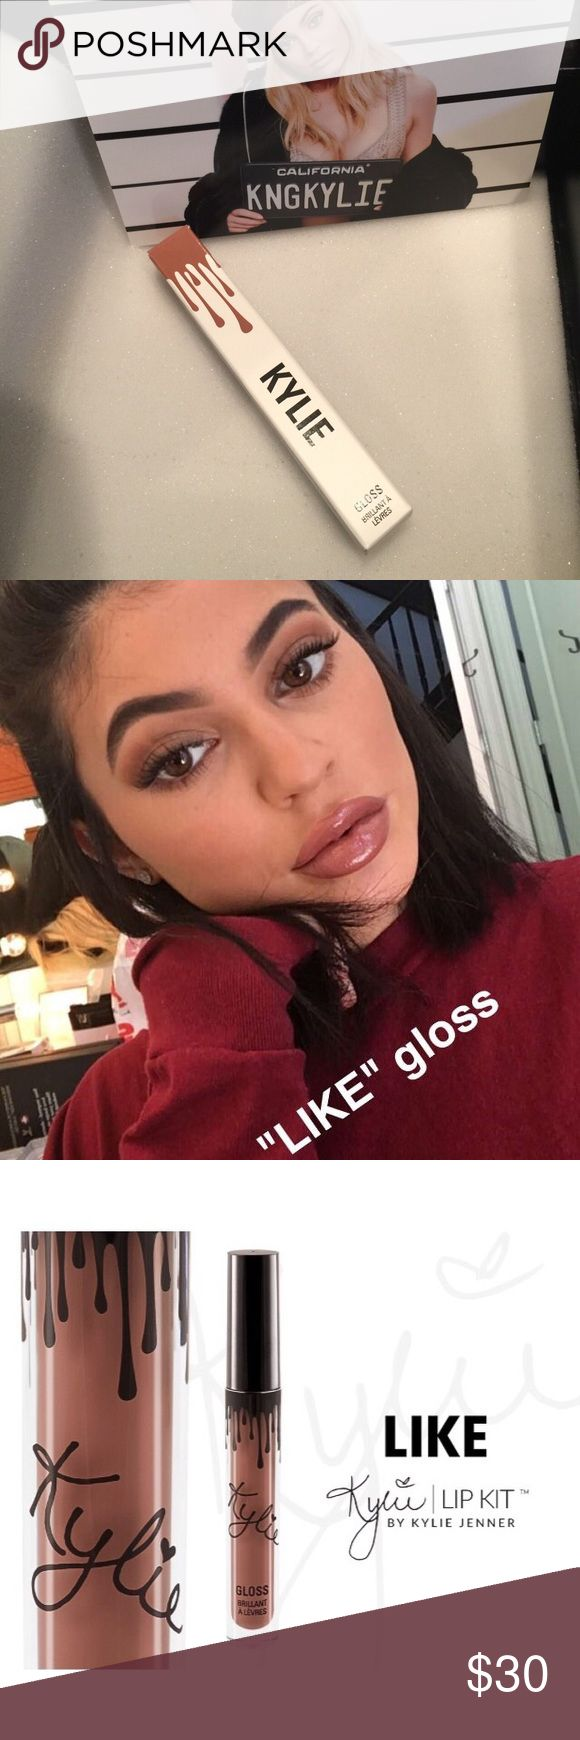 Kylie Like Lip Gloss Kylie Jenner like lip gloss. New in package. Price firm. No trades. Kylie Cosmetics Makeup Lip Balm & Gloss